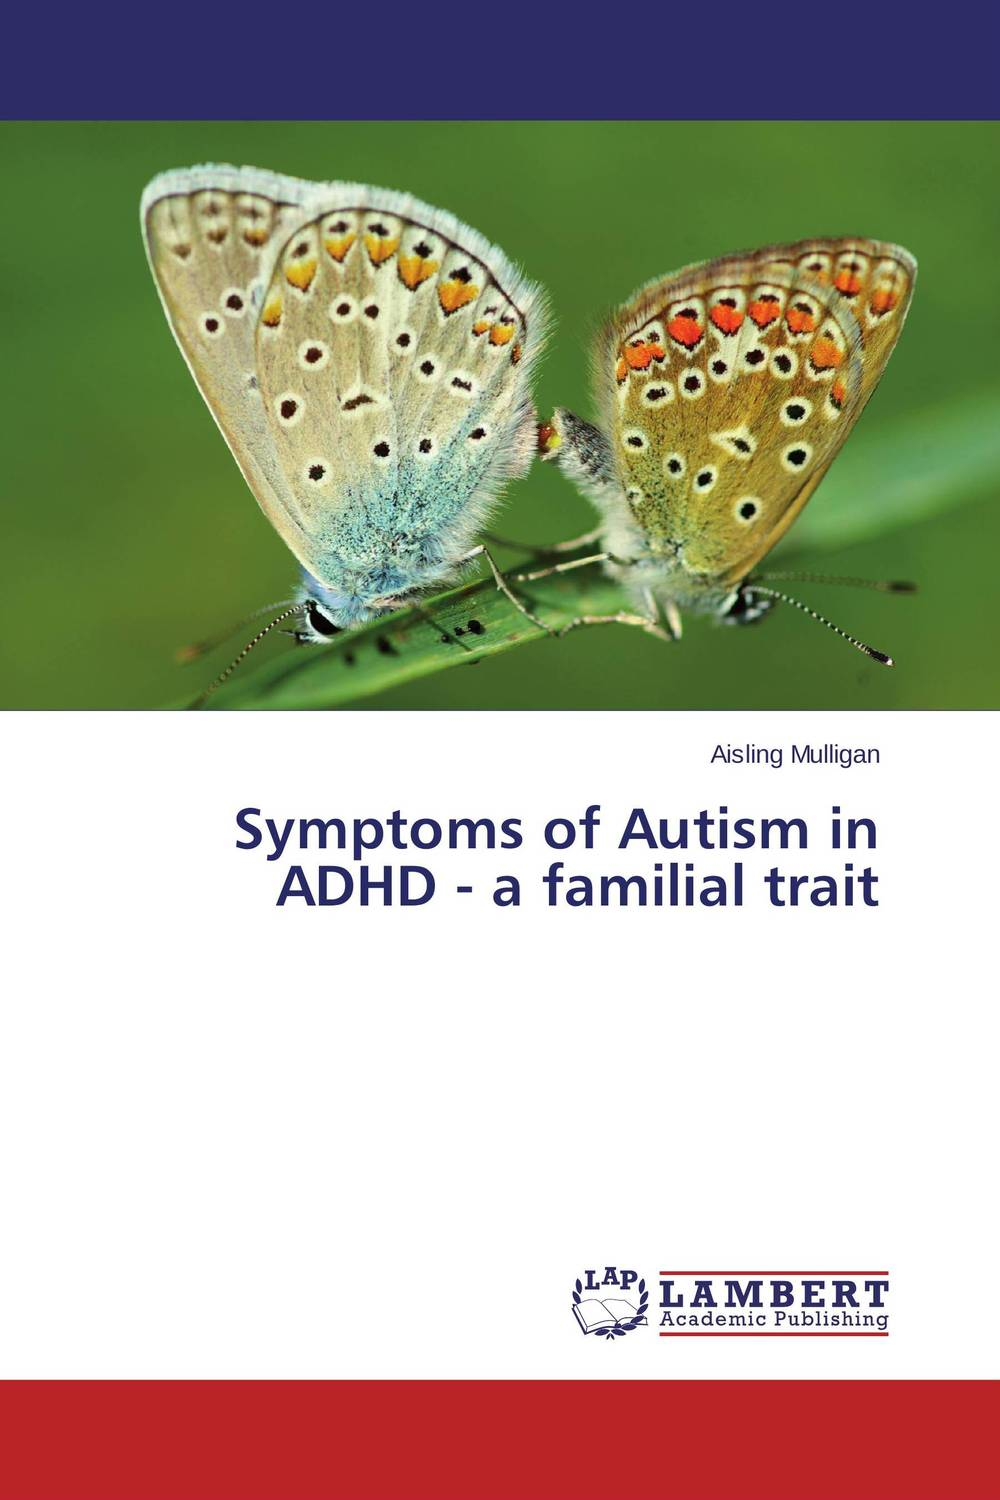 Symptoms of Autism in ADHD - a familial trait adhd advantage the